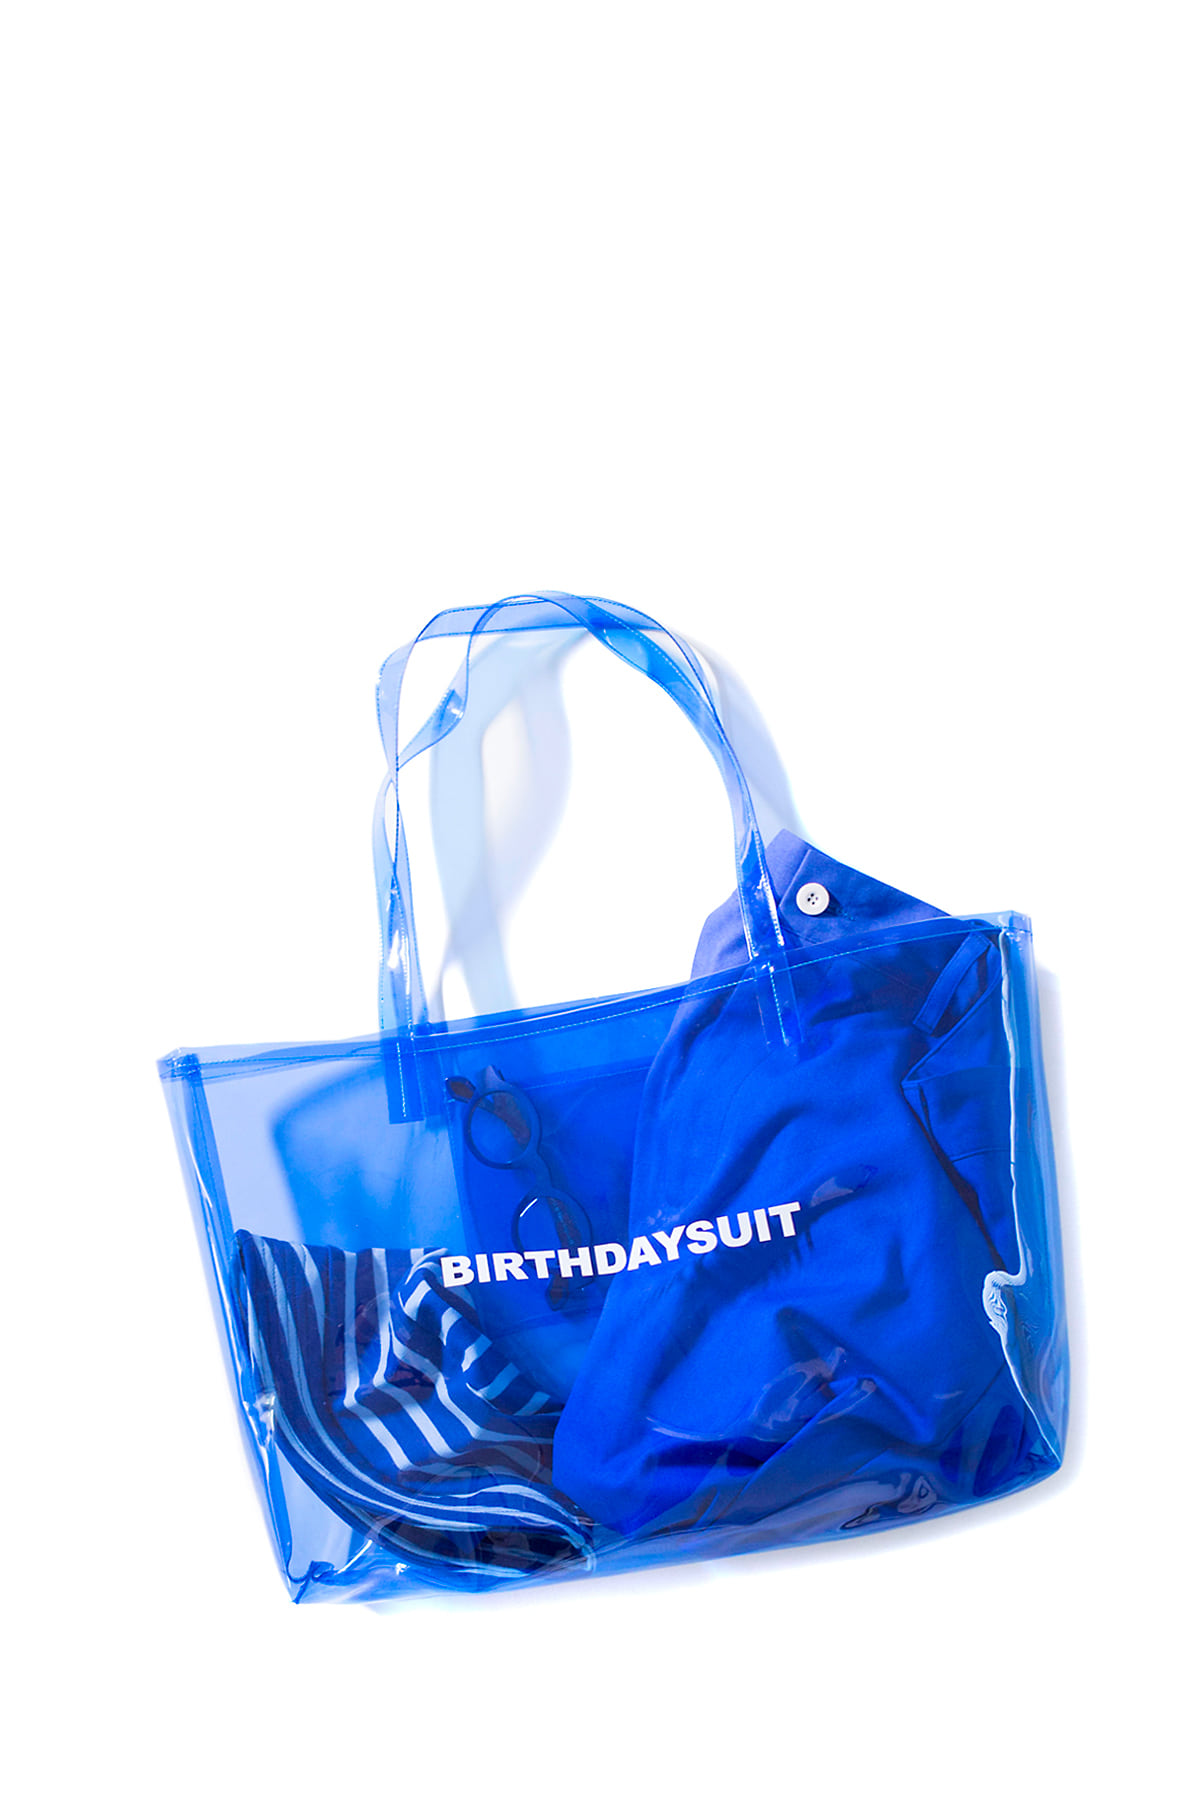 BIRTHDAYSUIT : LOGO PVC  (Blue)